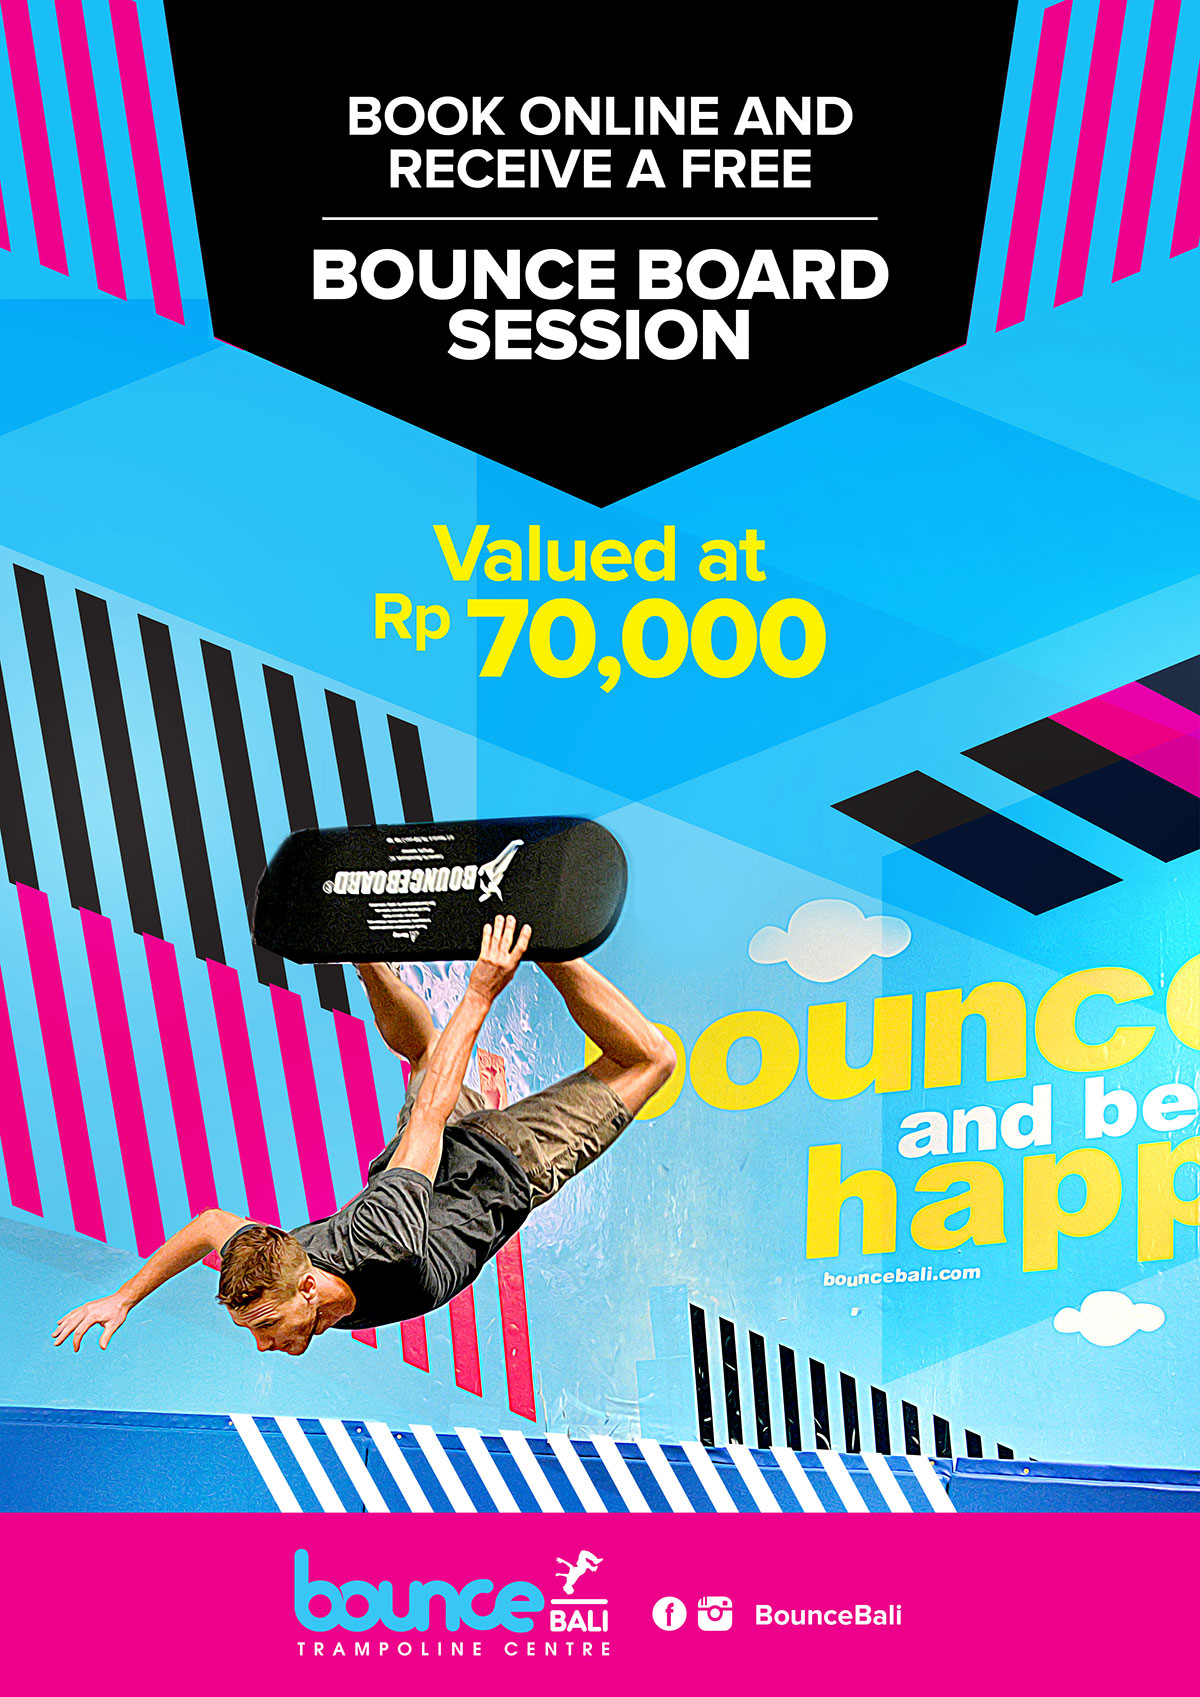 Bounce Board Session